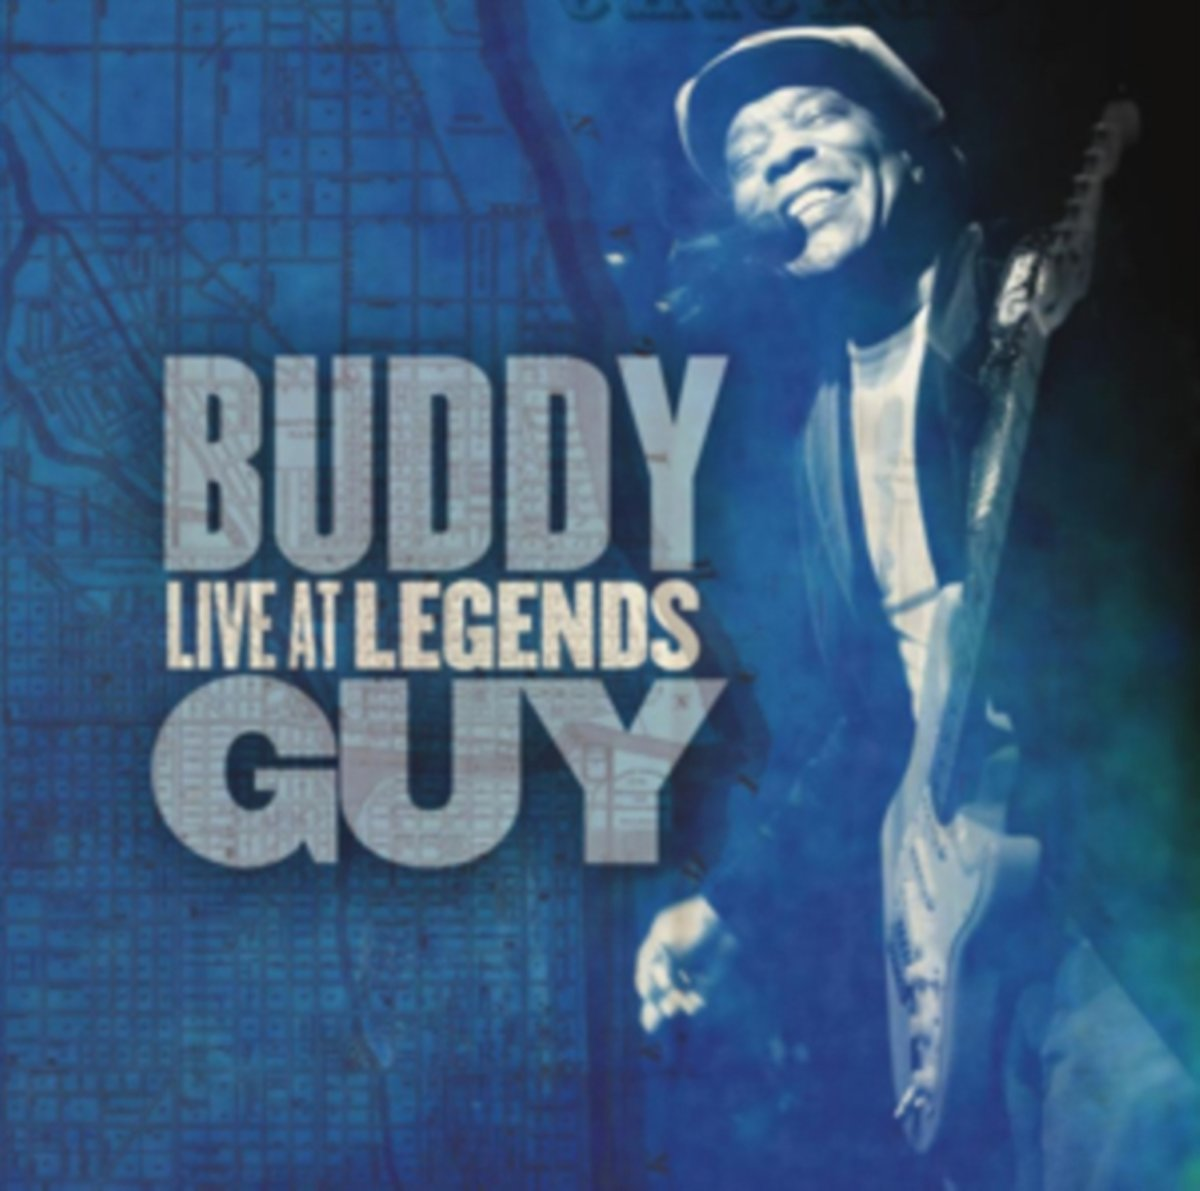 Buddy Guy Live at Legends Blues CD kopen